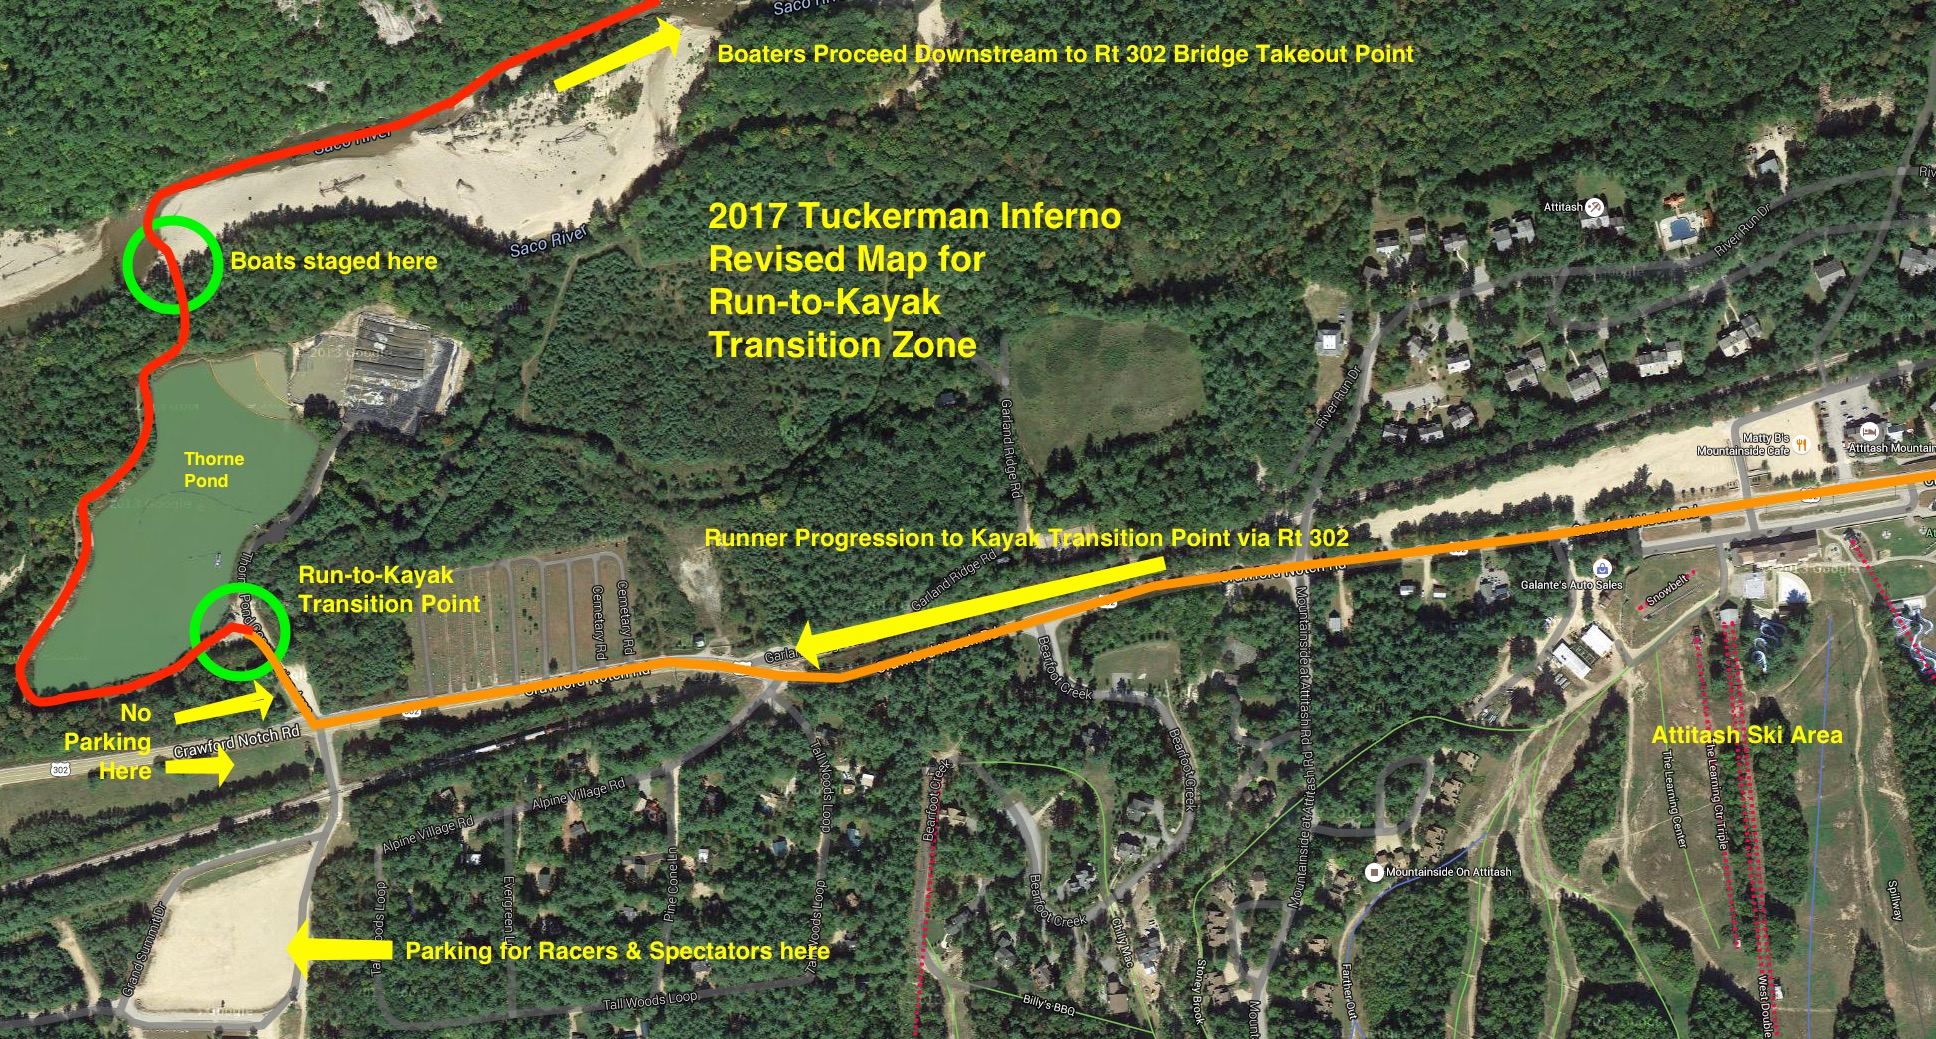 Tuckerman Inferno Course Maps on supernatural map, narco map, beowulf map, aeneid map, purgatorio map, divine comedy map, autobahn map, gta san andreas map, 9 circles of hell map, battlefield map, the odyssey map, revelation map,